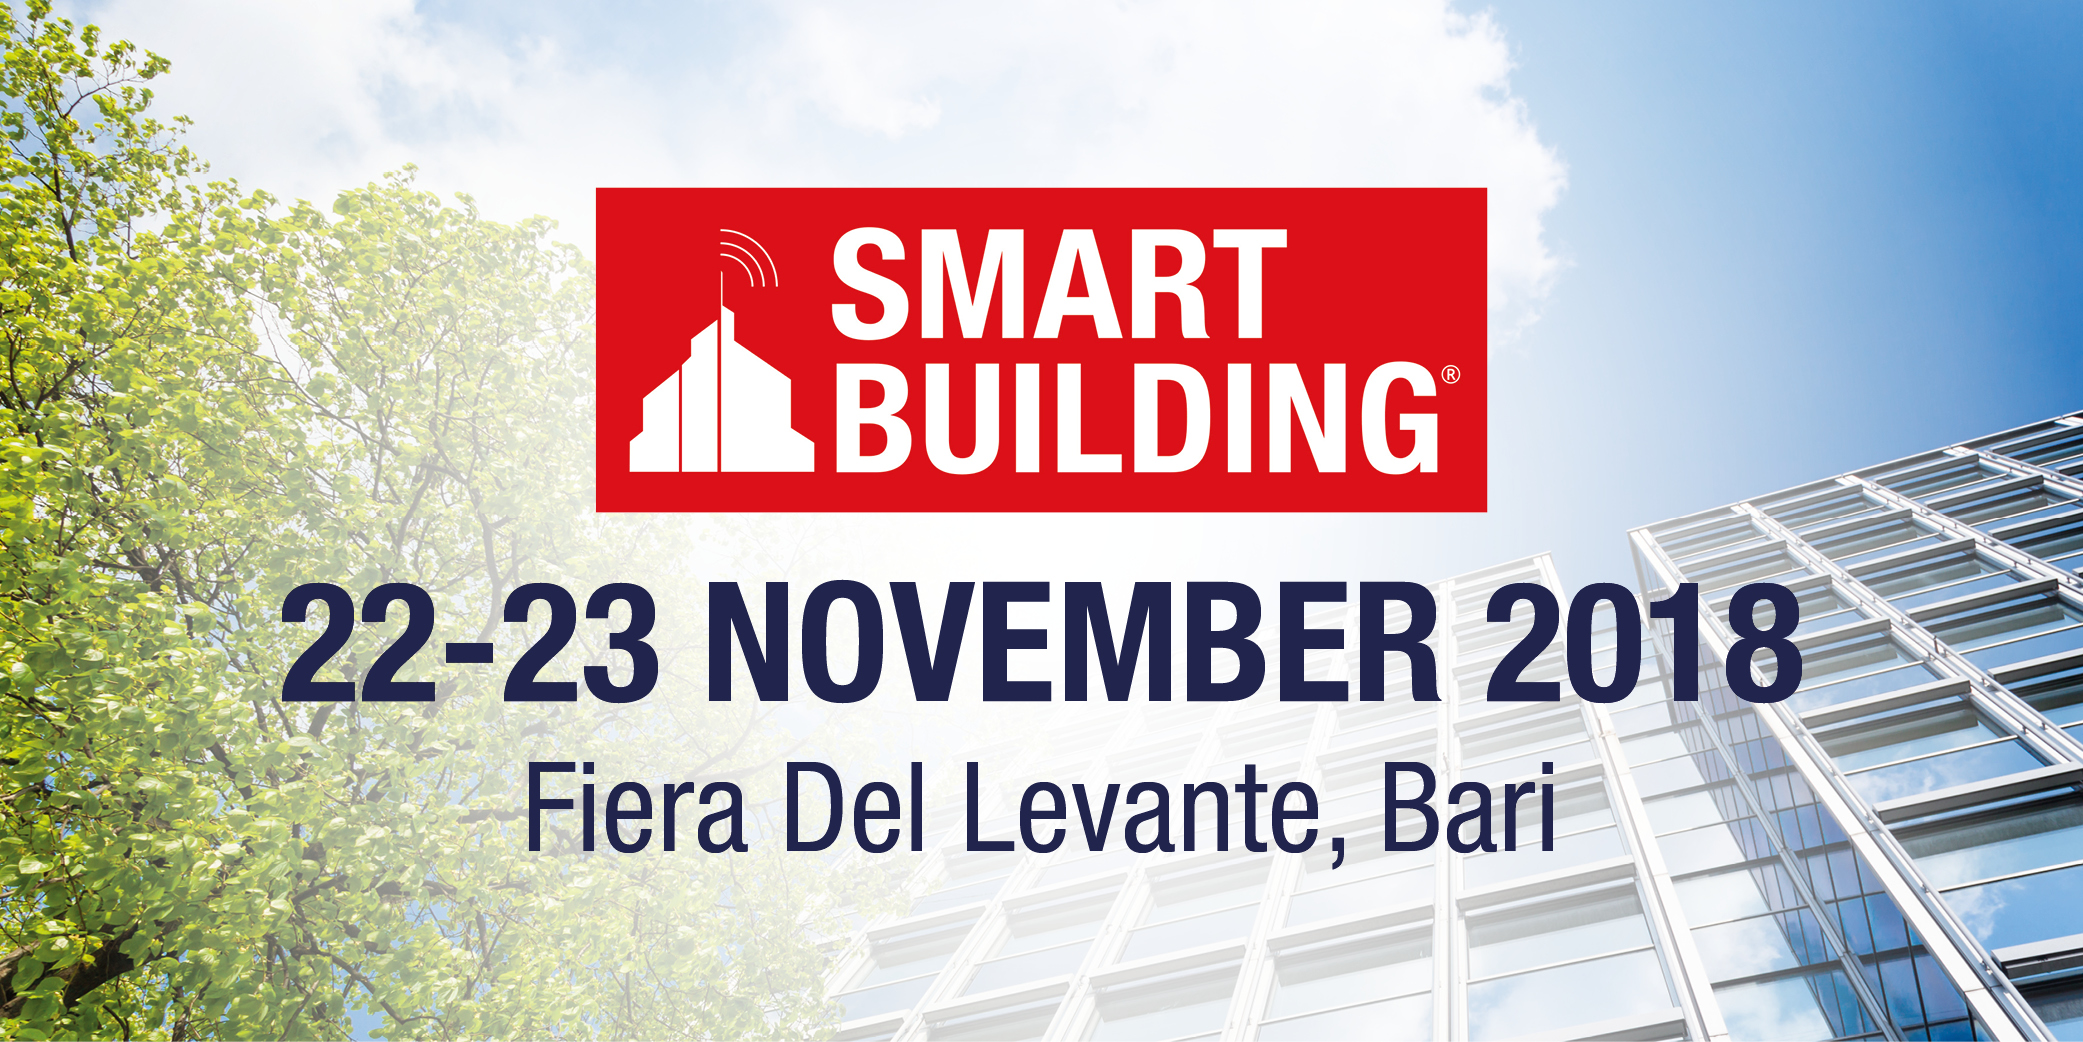 RHOSS ON SMART BUILDING LEVANTE